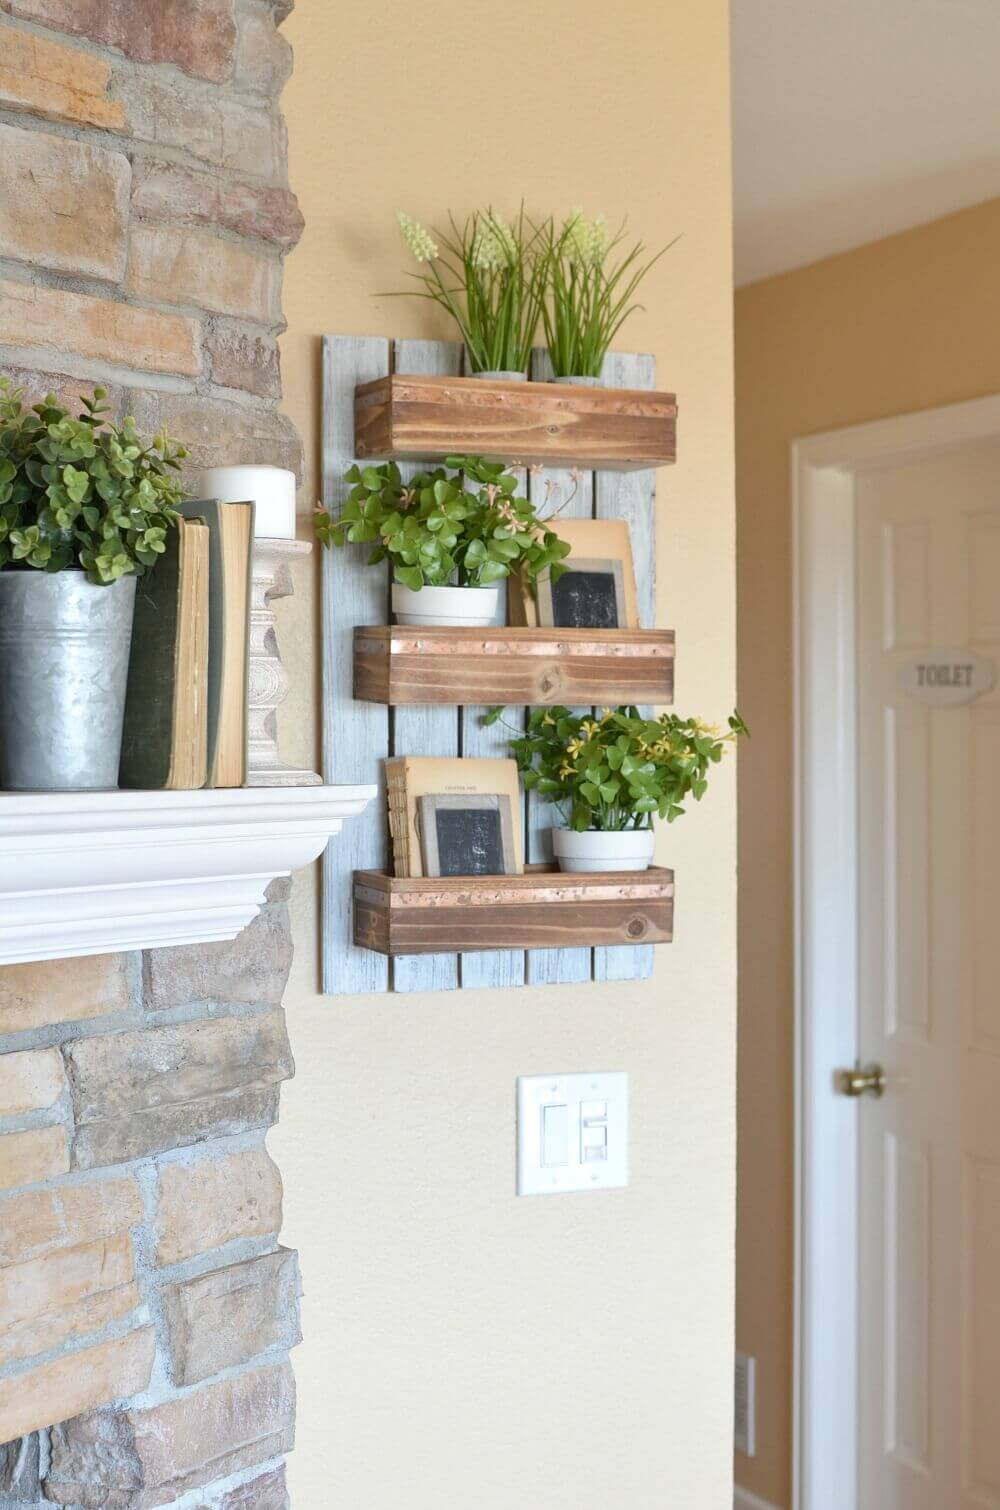 Wood Pallet Style Shelf with Plants